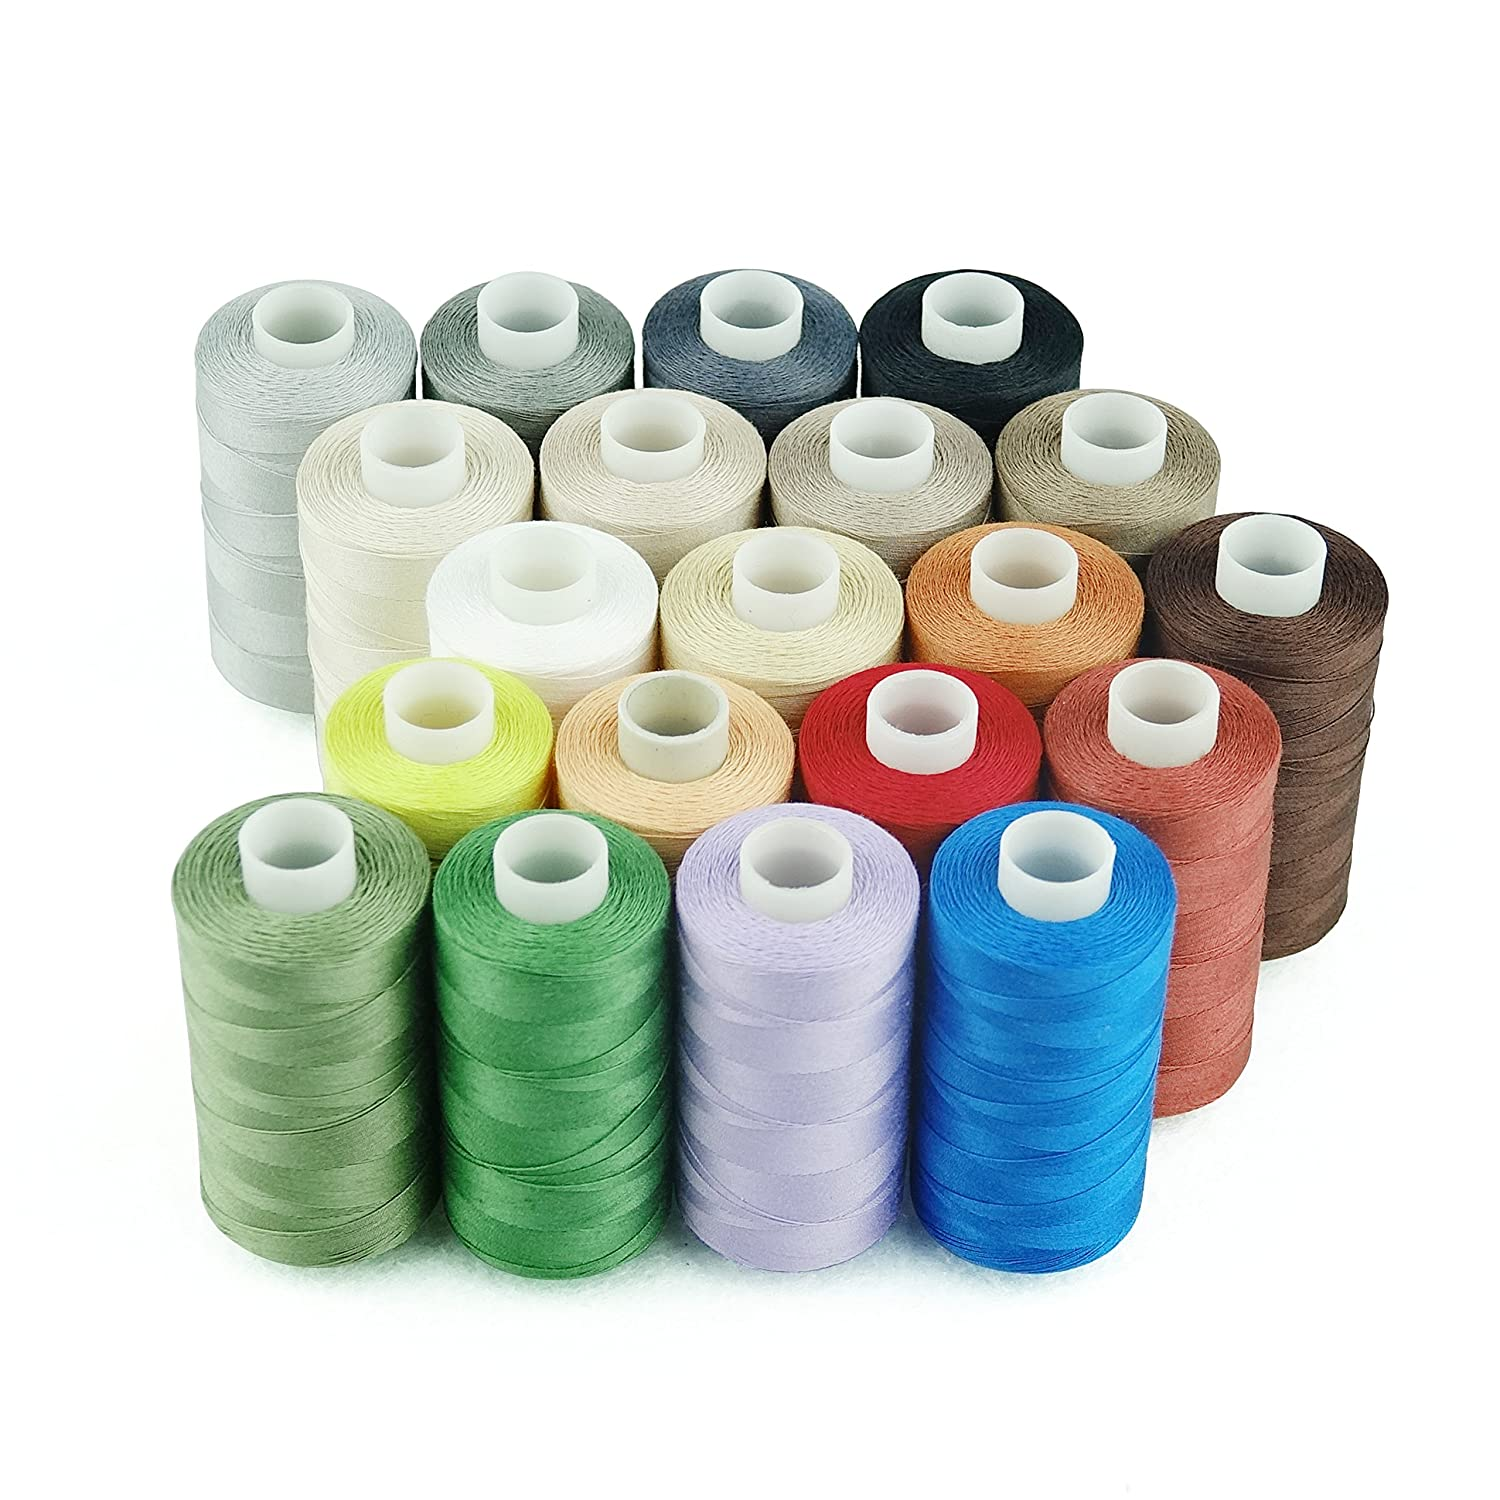 Simthread 12 Multi Colors 100% Cotton Sewing Thread 50s/3 for Quilting etc - 550 Yards Each (6 White 6 Black) CR THREAD INDUSTRY